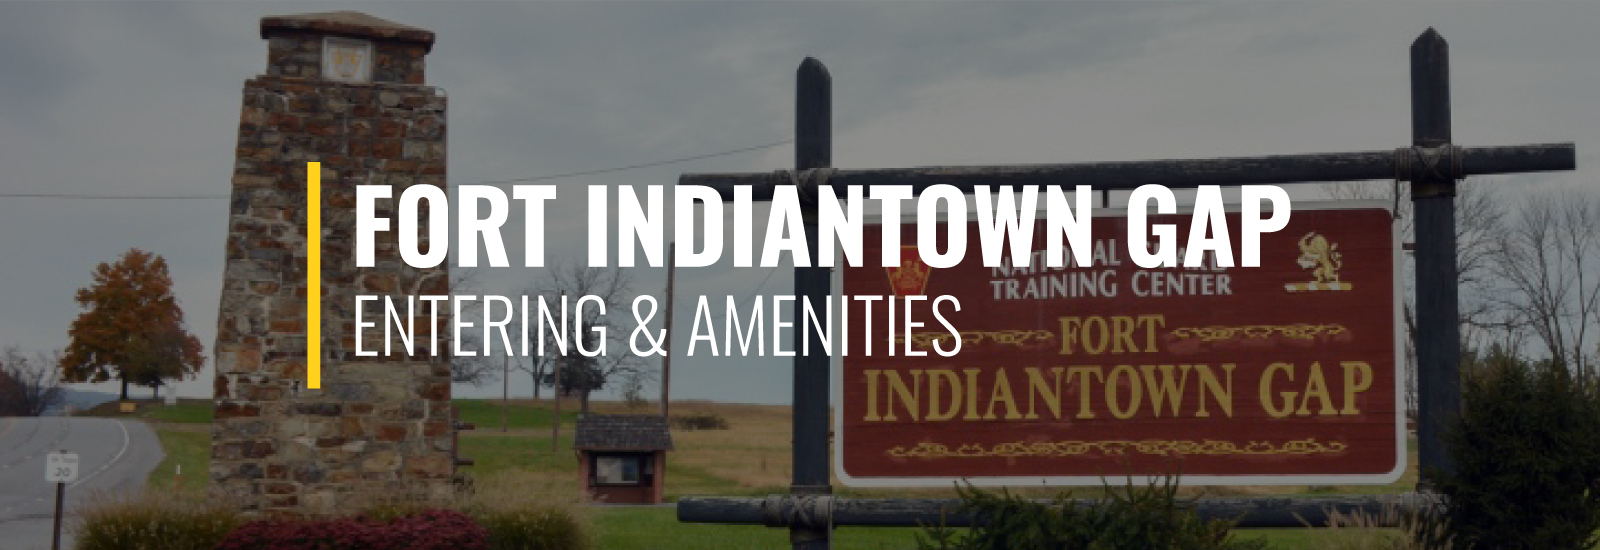 Entering Fort Indiantown Gap and Post Amenities